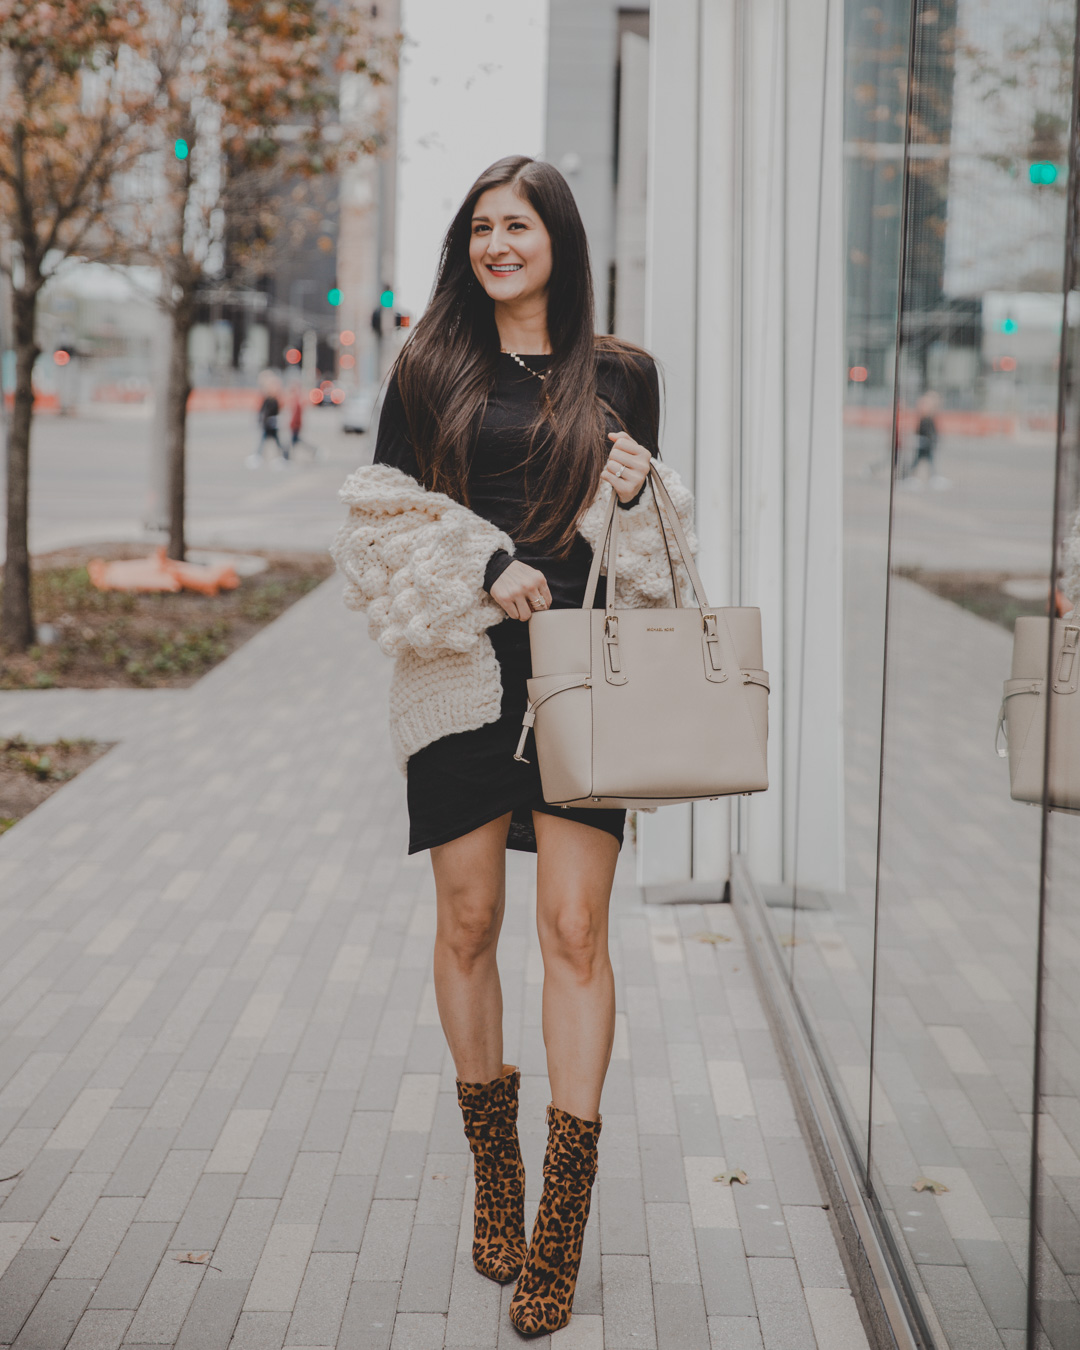 Leith ruched dress. Shirt dress outfit inspiration. The Fashionable Maven